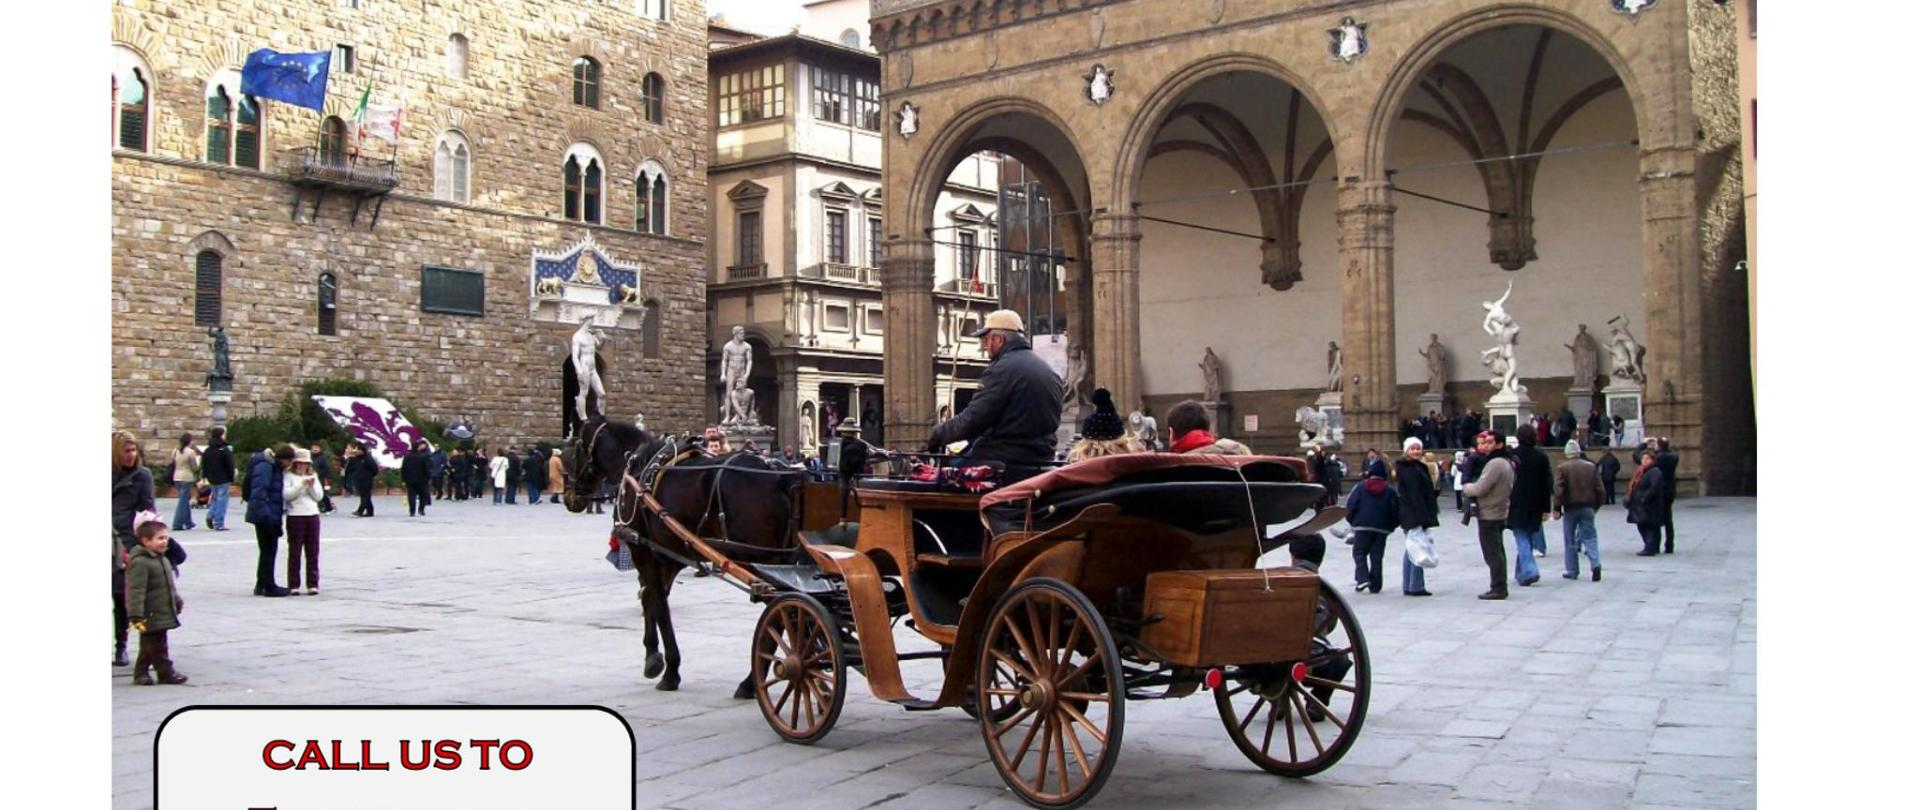 carrozza.png